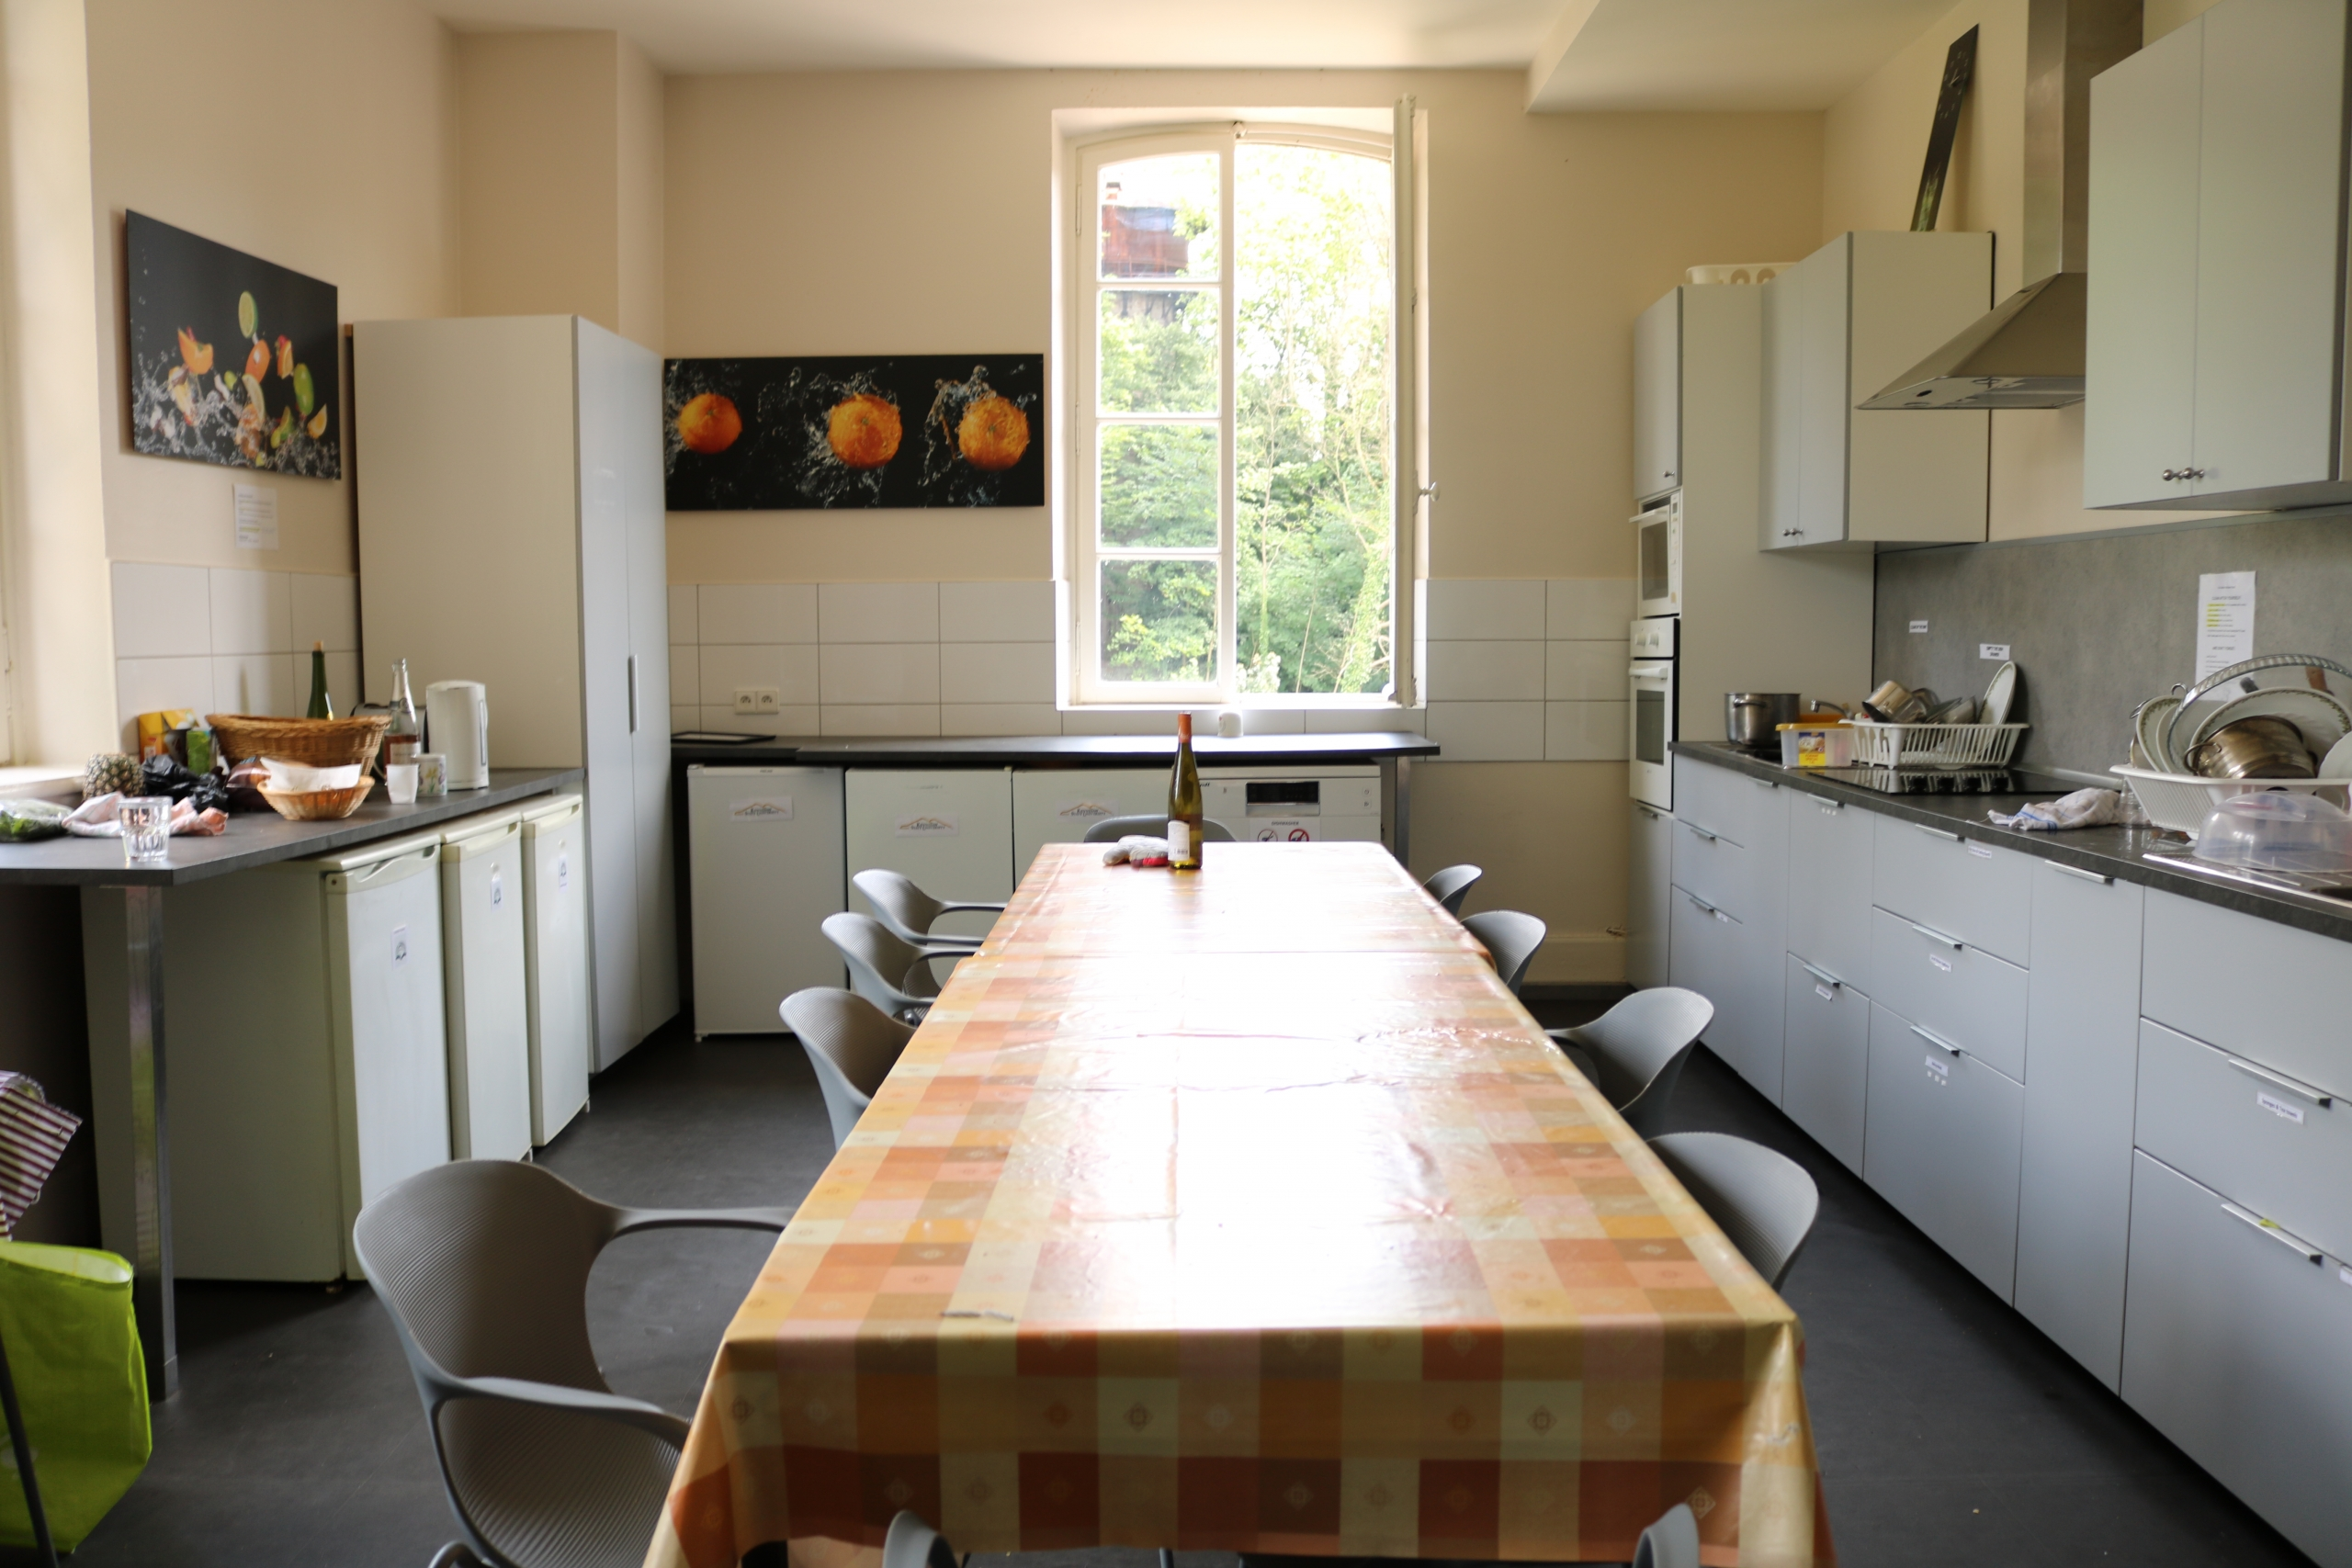 Student Kitchen at the European Study Center Chateau de Pourtales, Strasbourg France